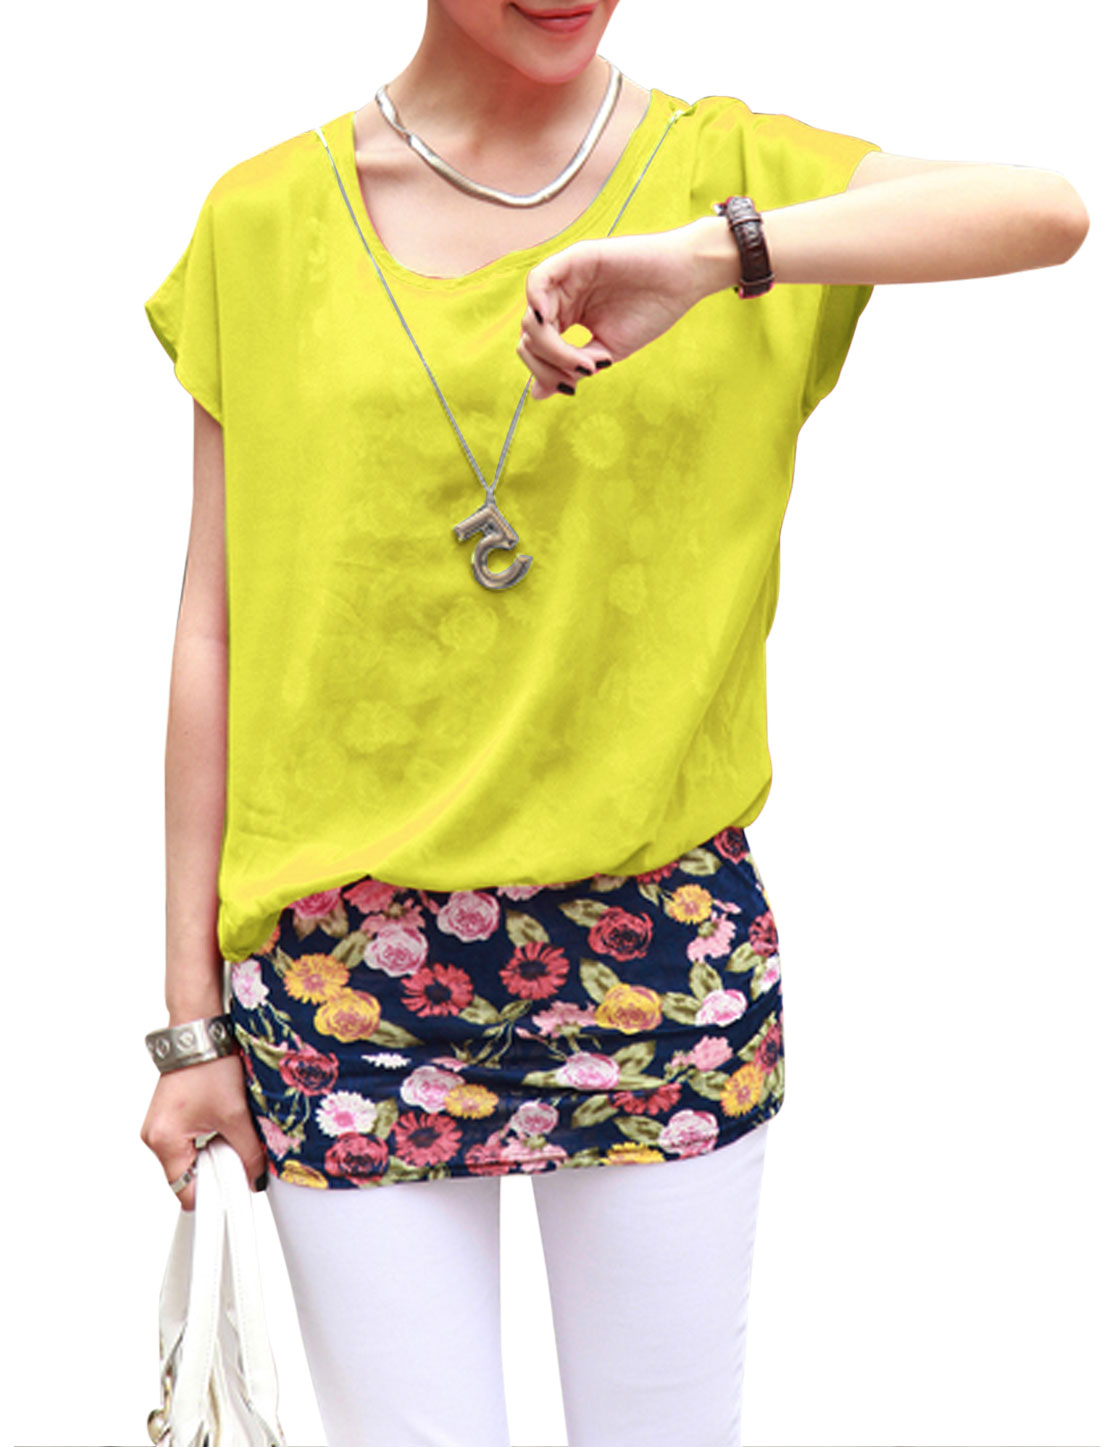 Lady Layered Shirts Floral Prints Tunic Top w Necklace Yellow S